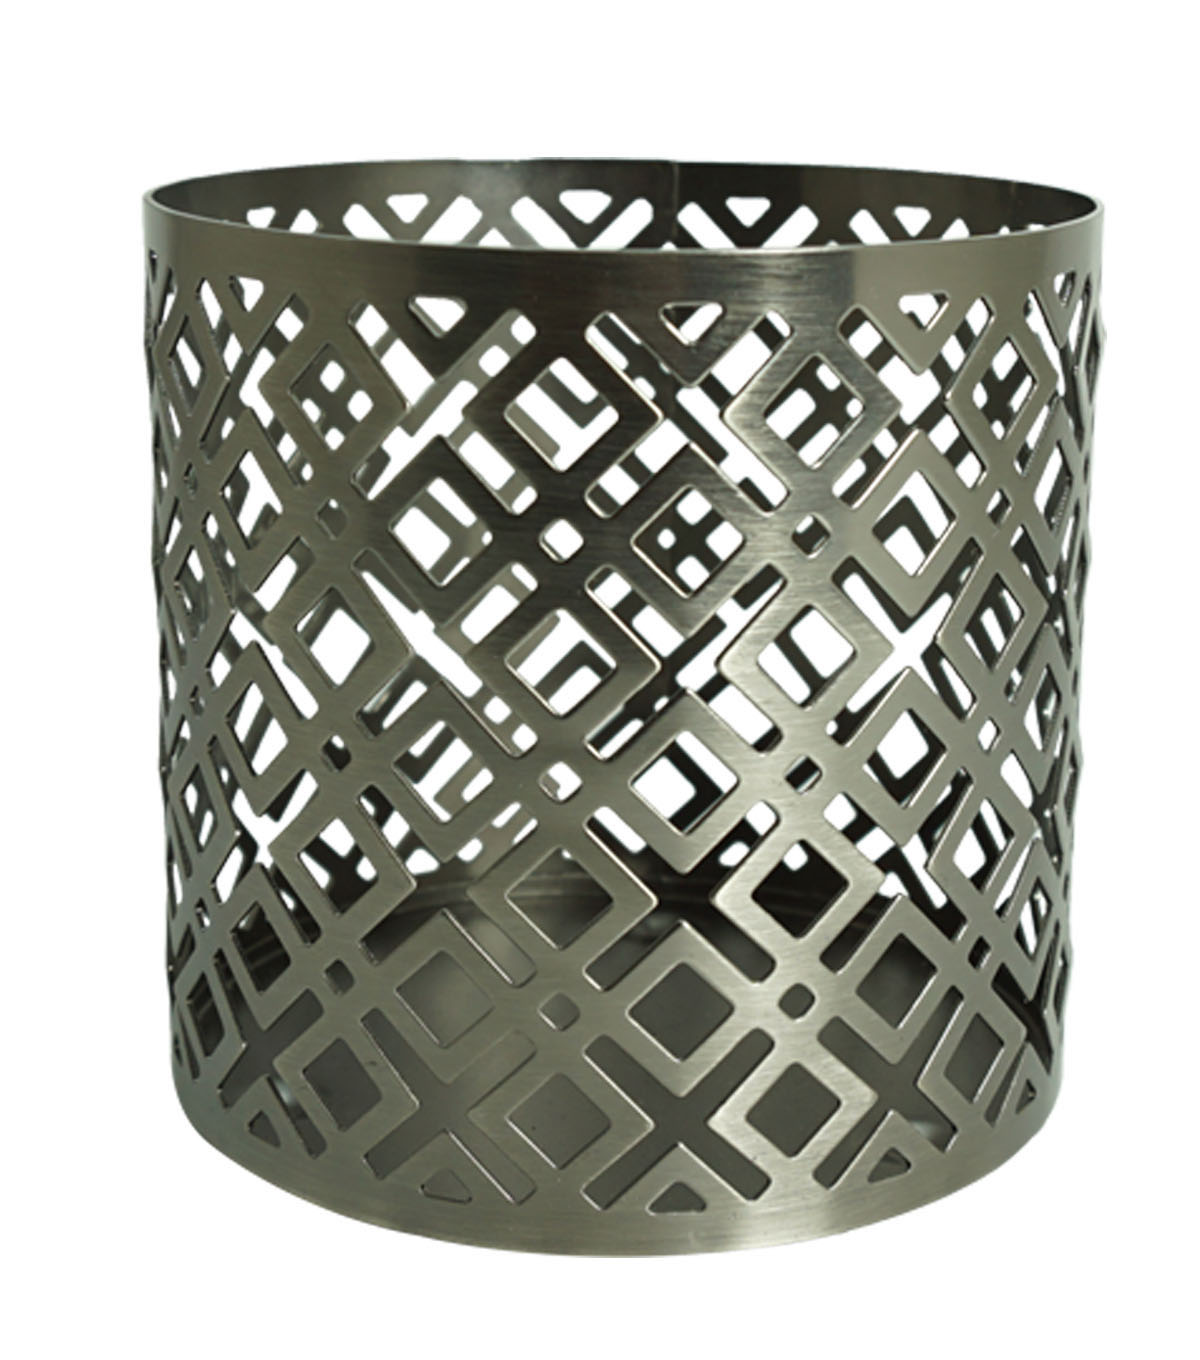 Hudson 43 Diamond Cut Candle Sleeve-Silver